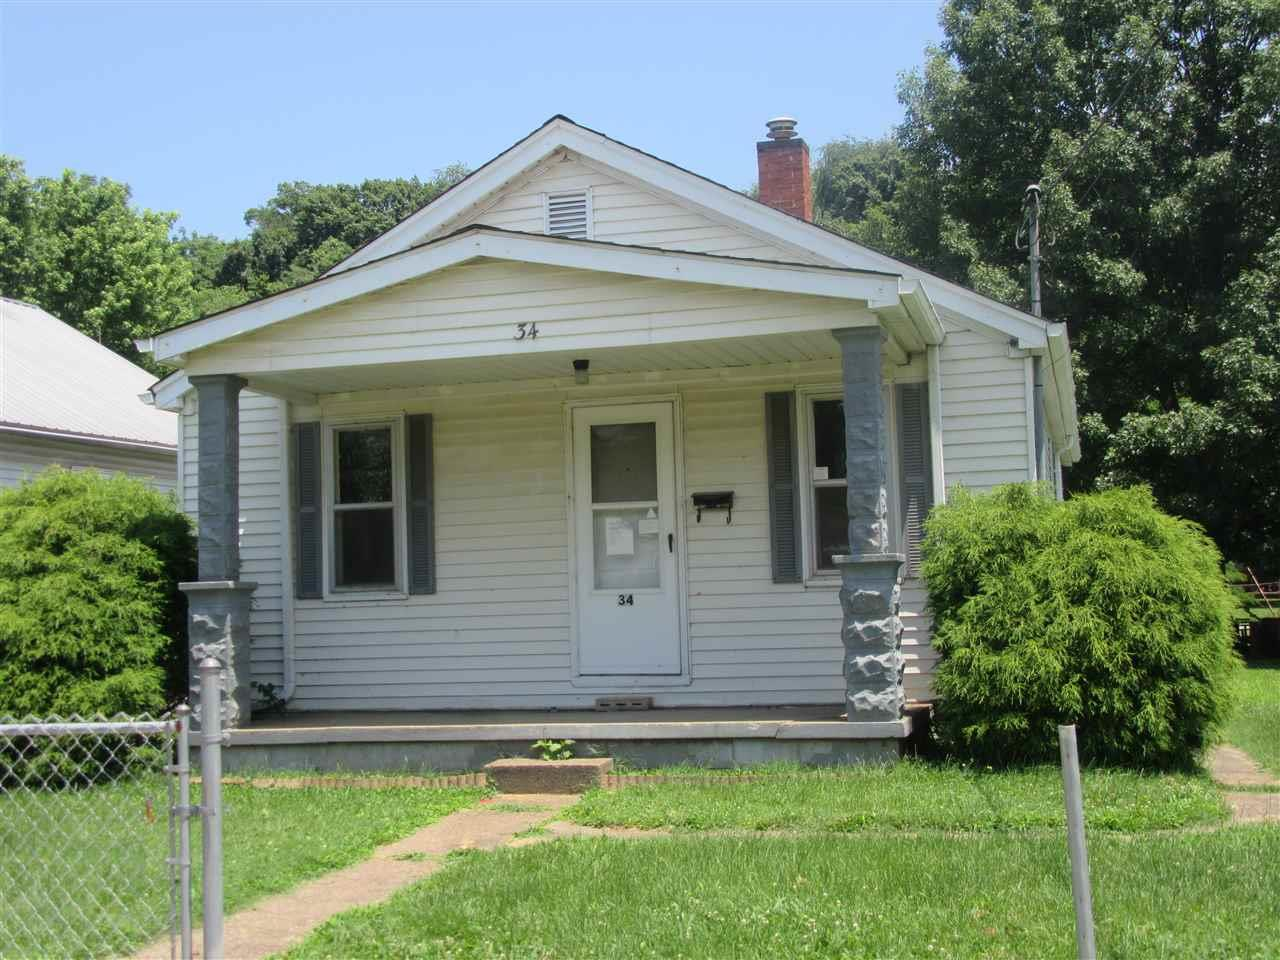 34 9th, Tell City, IN 47586